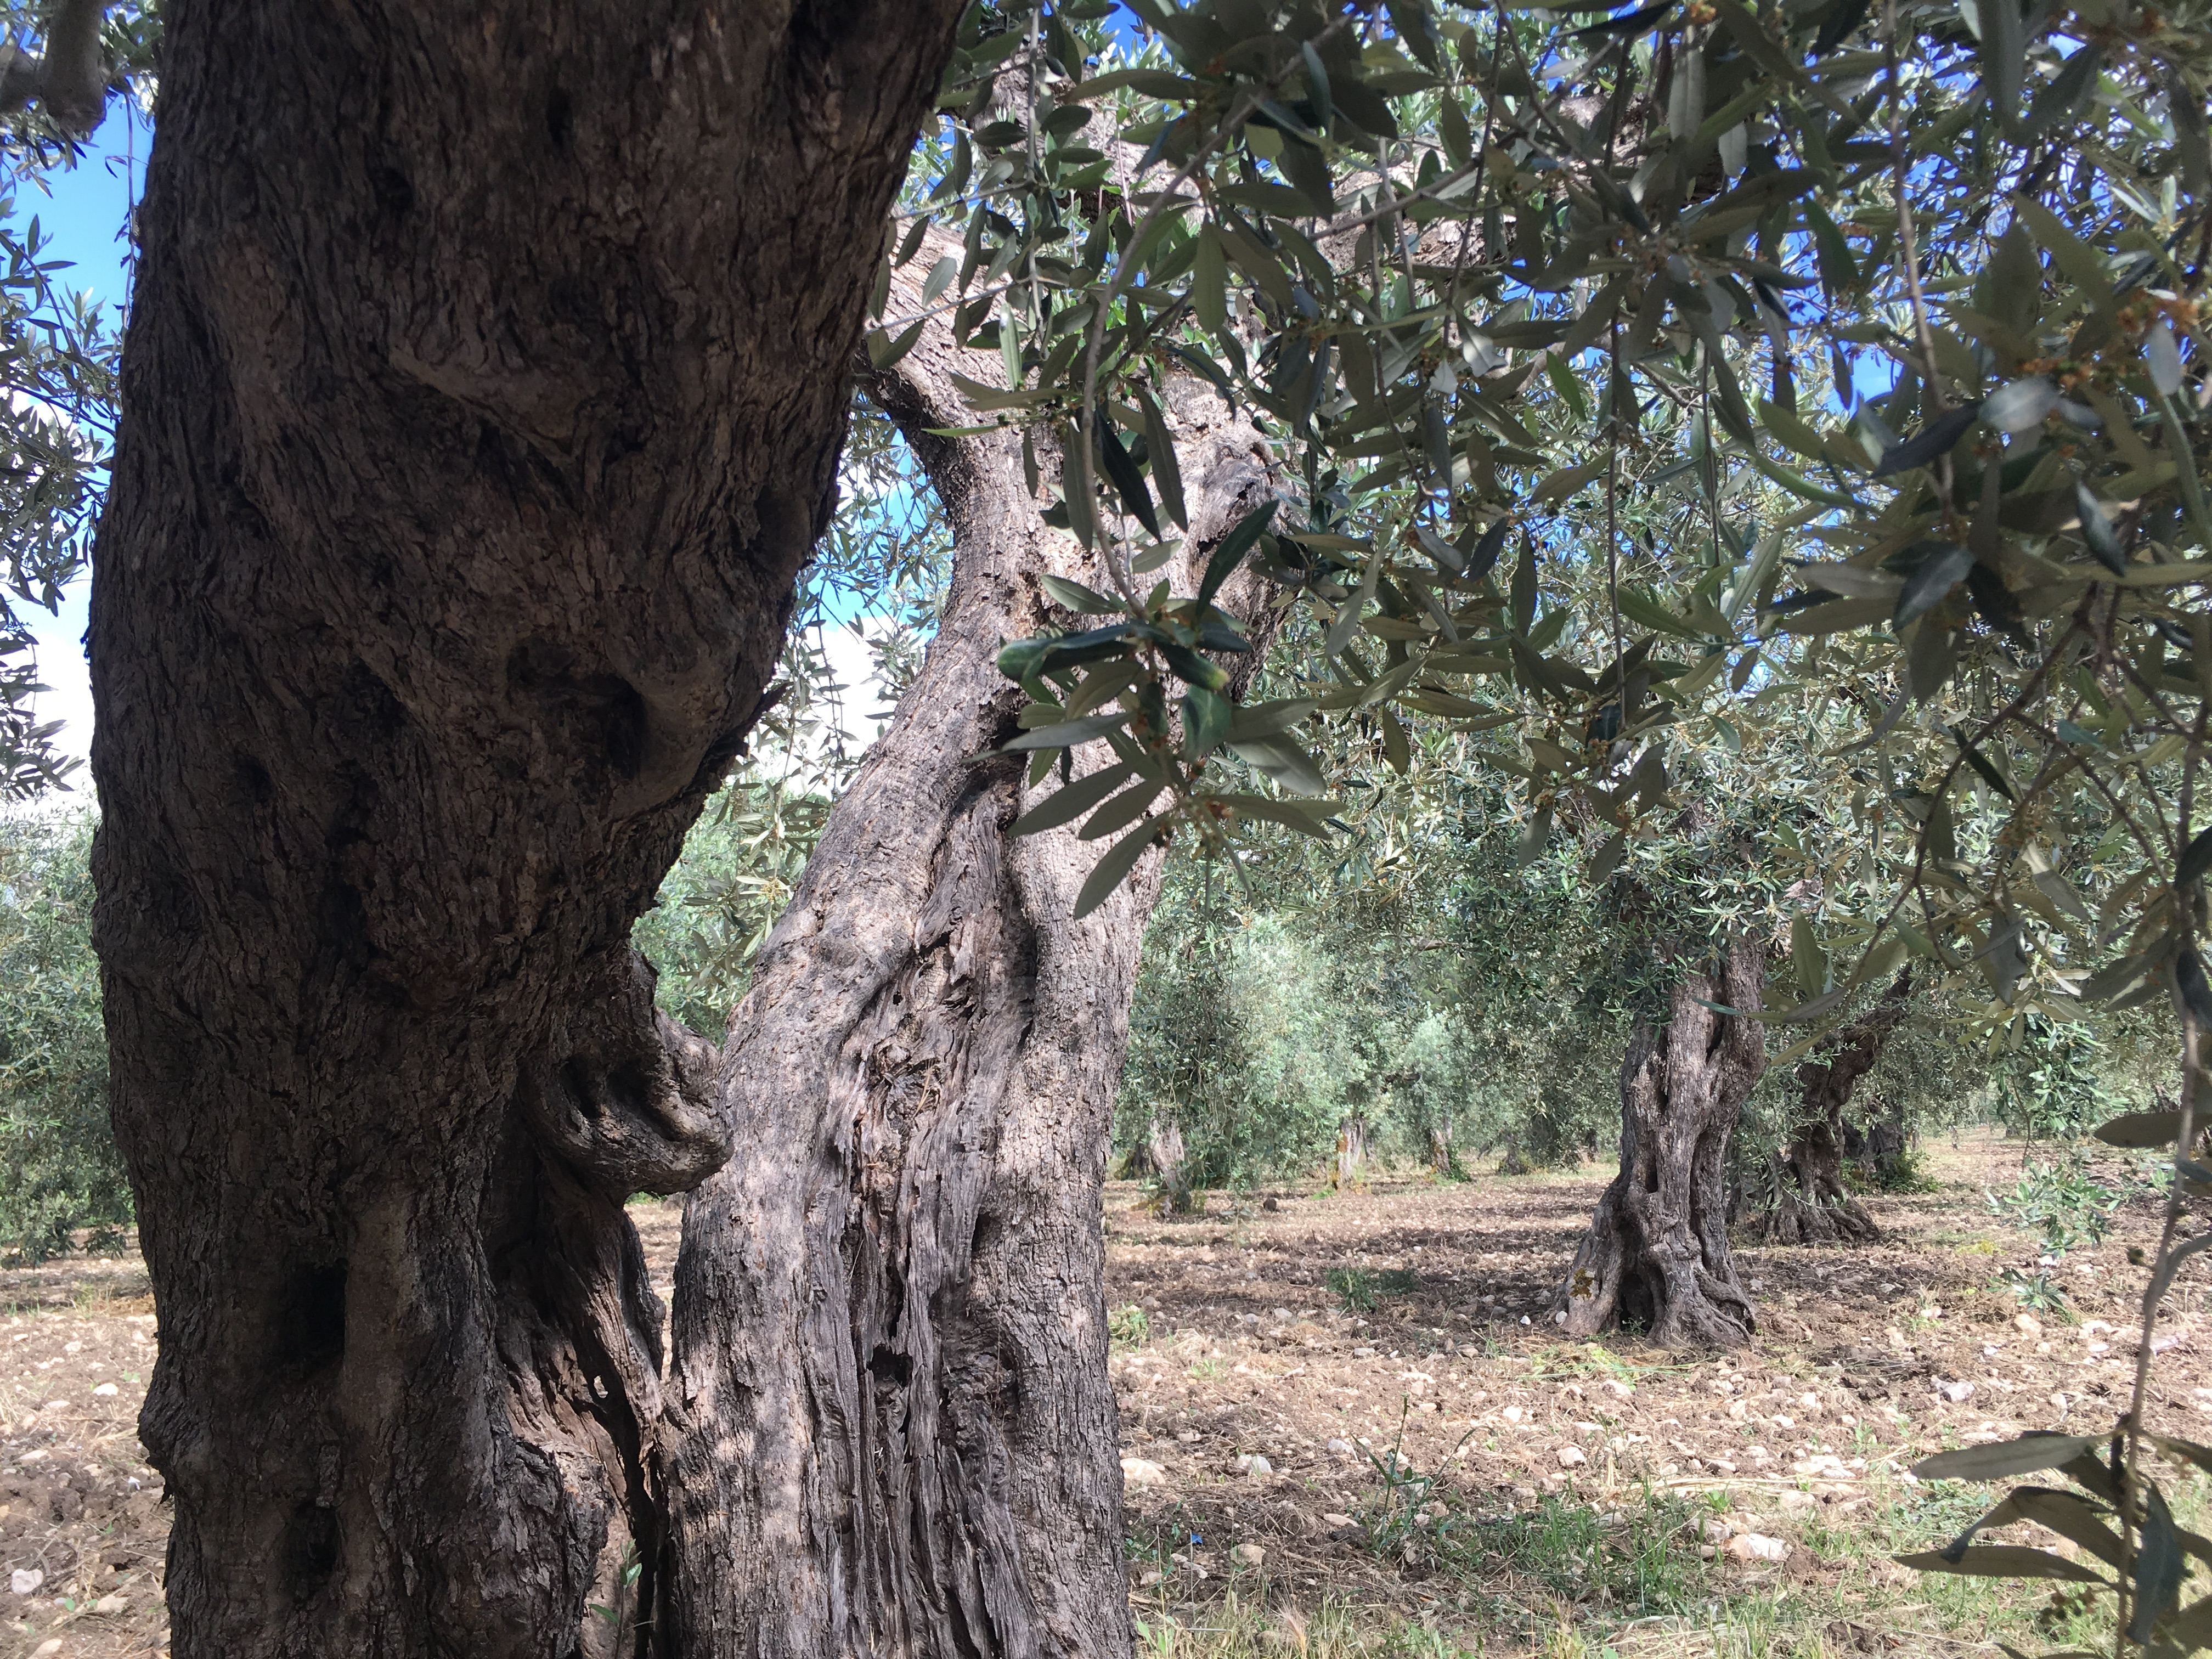 olive trees orange lake sambucca di sicilia snow etna live volcano nature sport lava active fun hiking trekking walking excursionist Sicily mountains forest